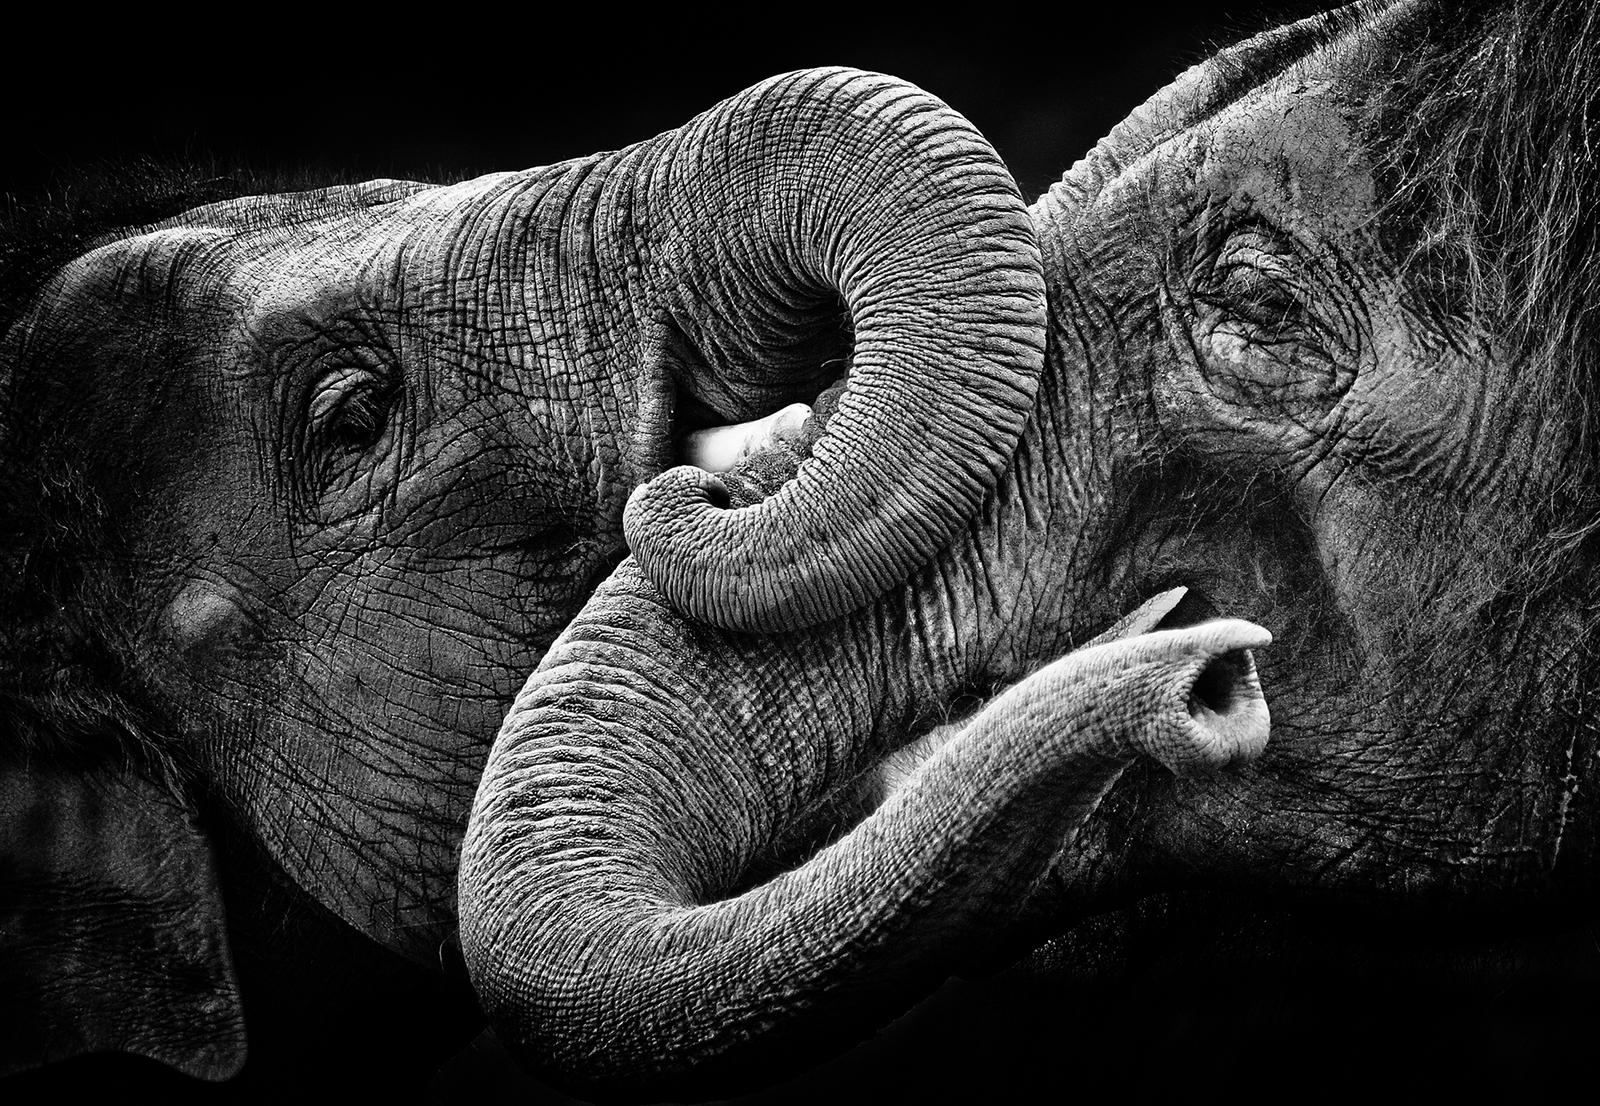 Two elephants interlocking trunk